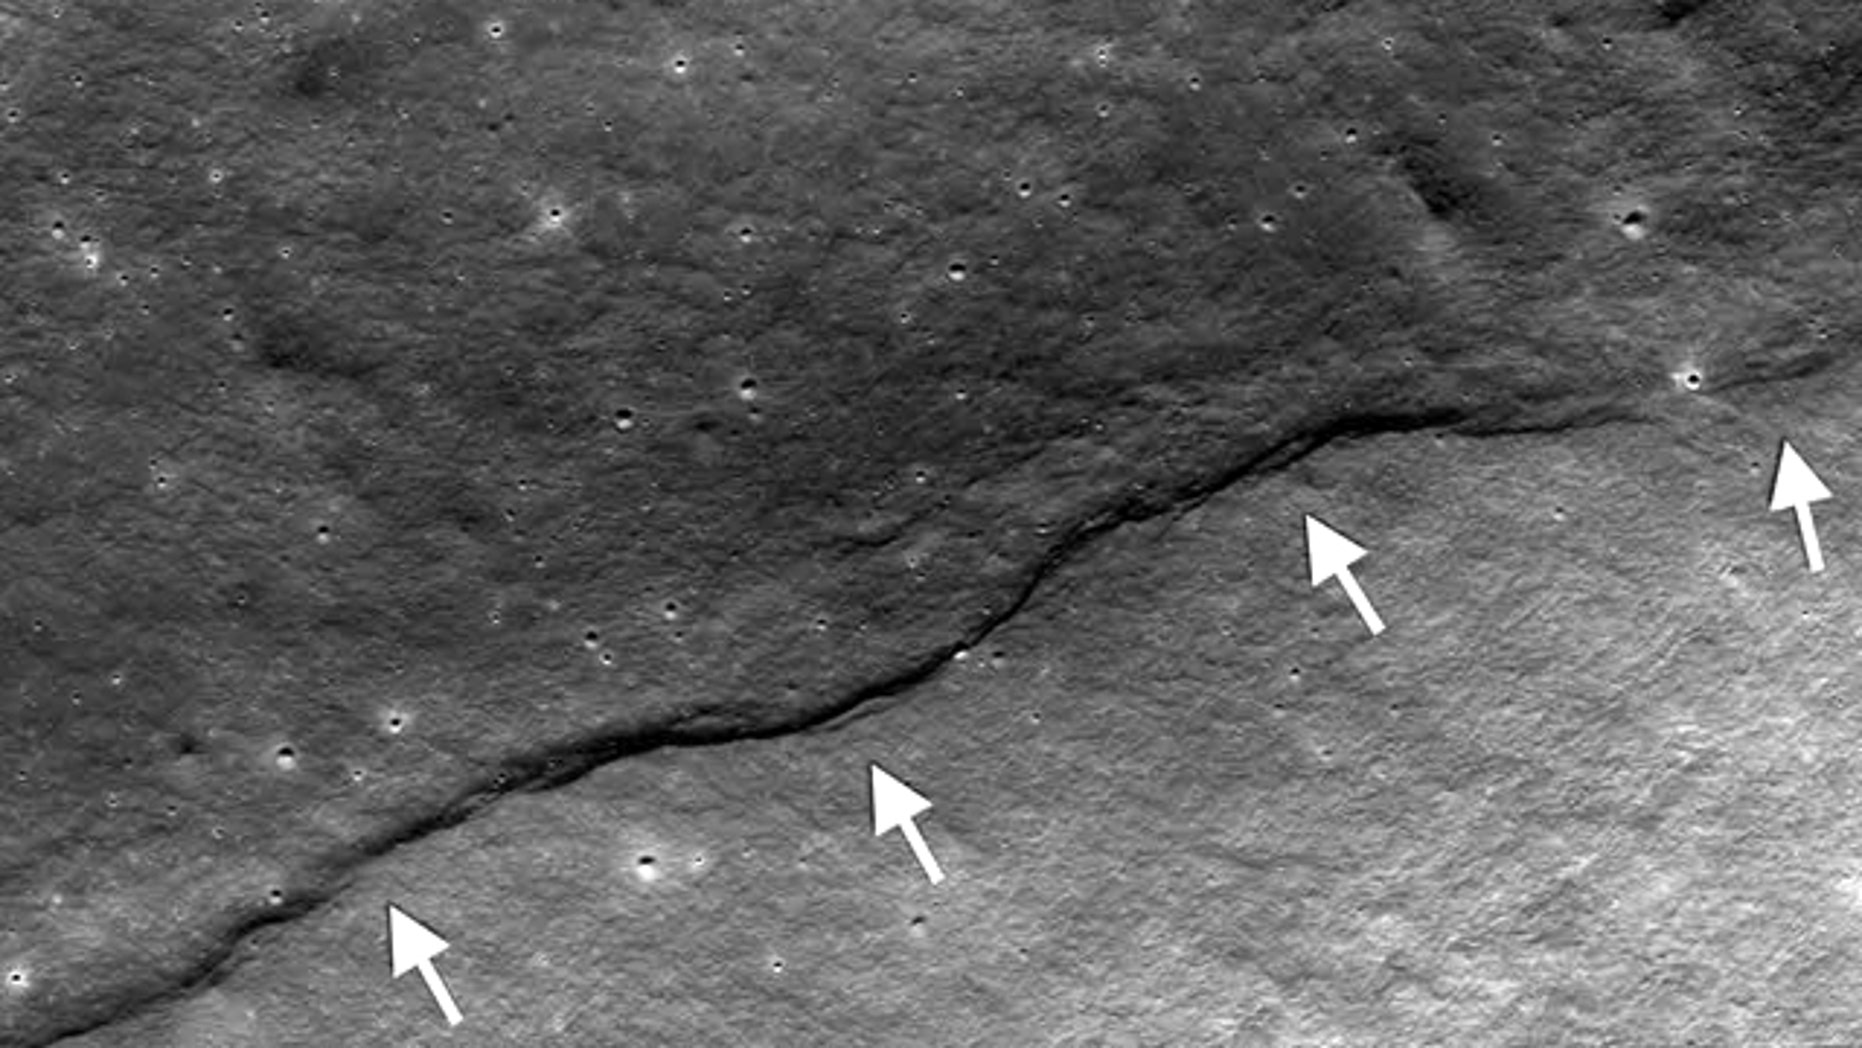 By analyzing new photos of faults such as this on the moon, scientists have concluded that our nearest heavenly body is shrinking.